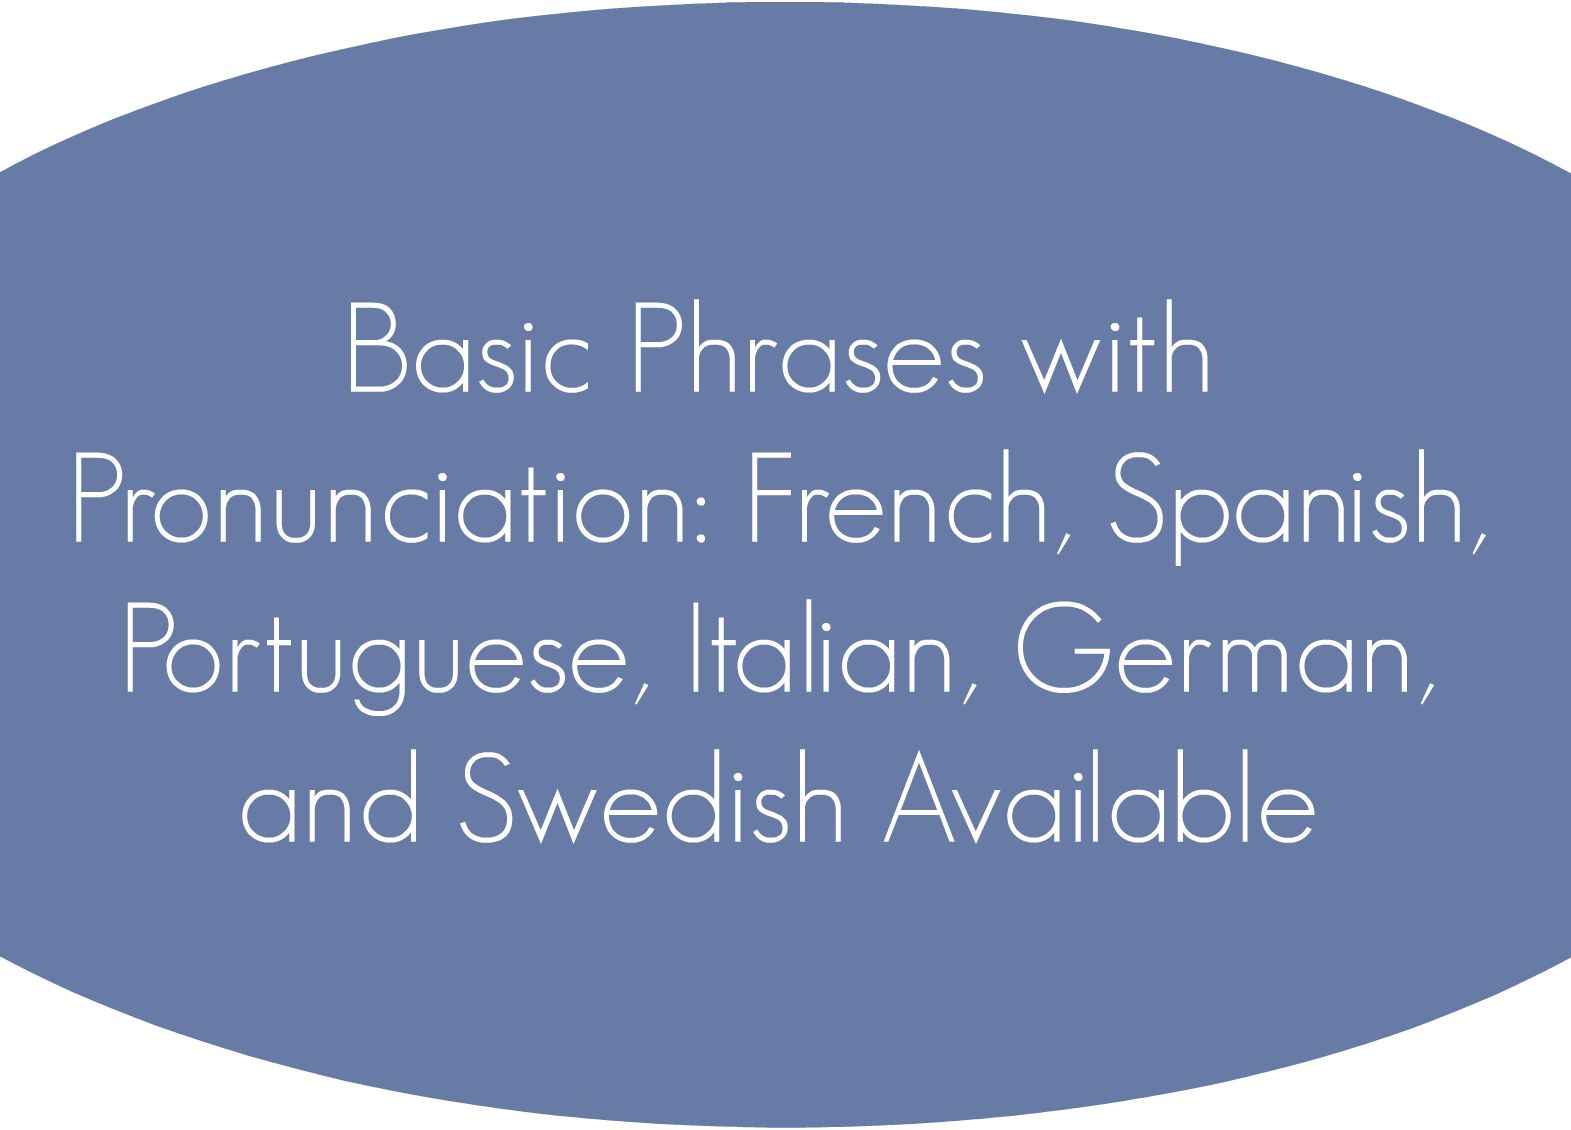 Basic Phrases with Pronunciation: French, Spanish, Portuguese, Italian, German, and Swedish Available